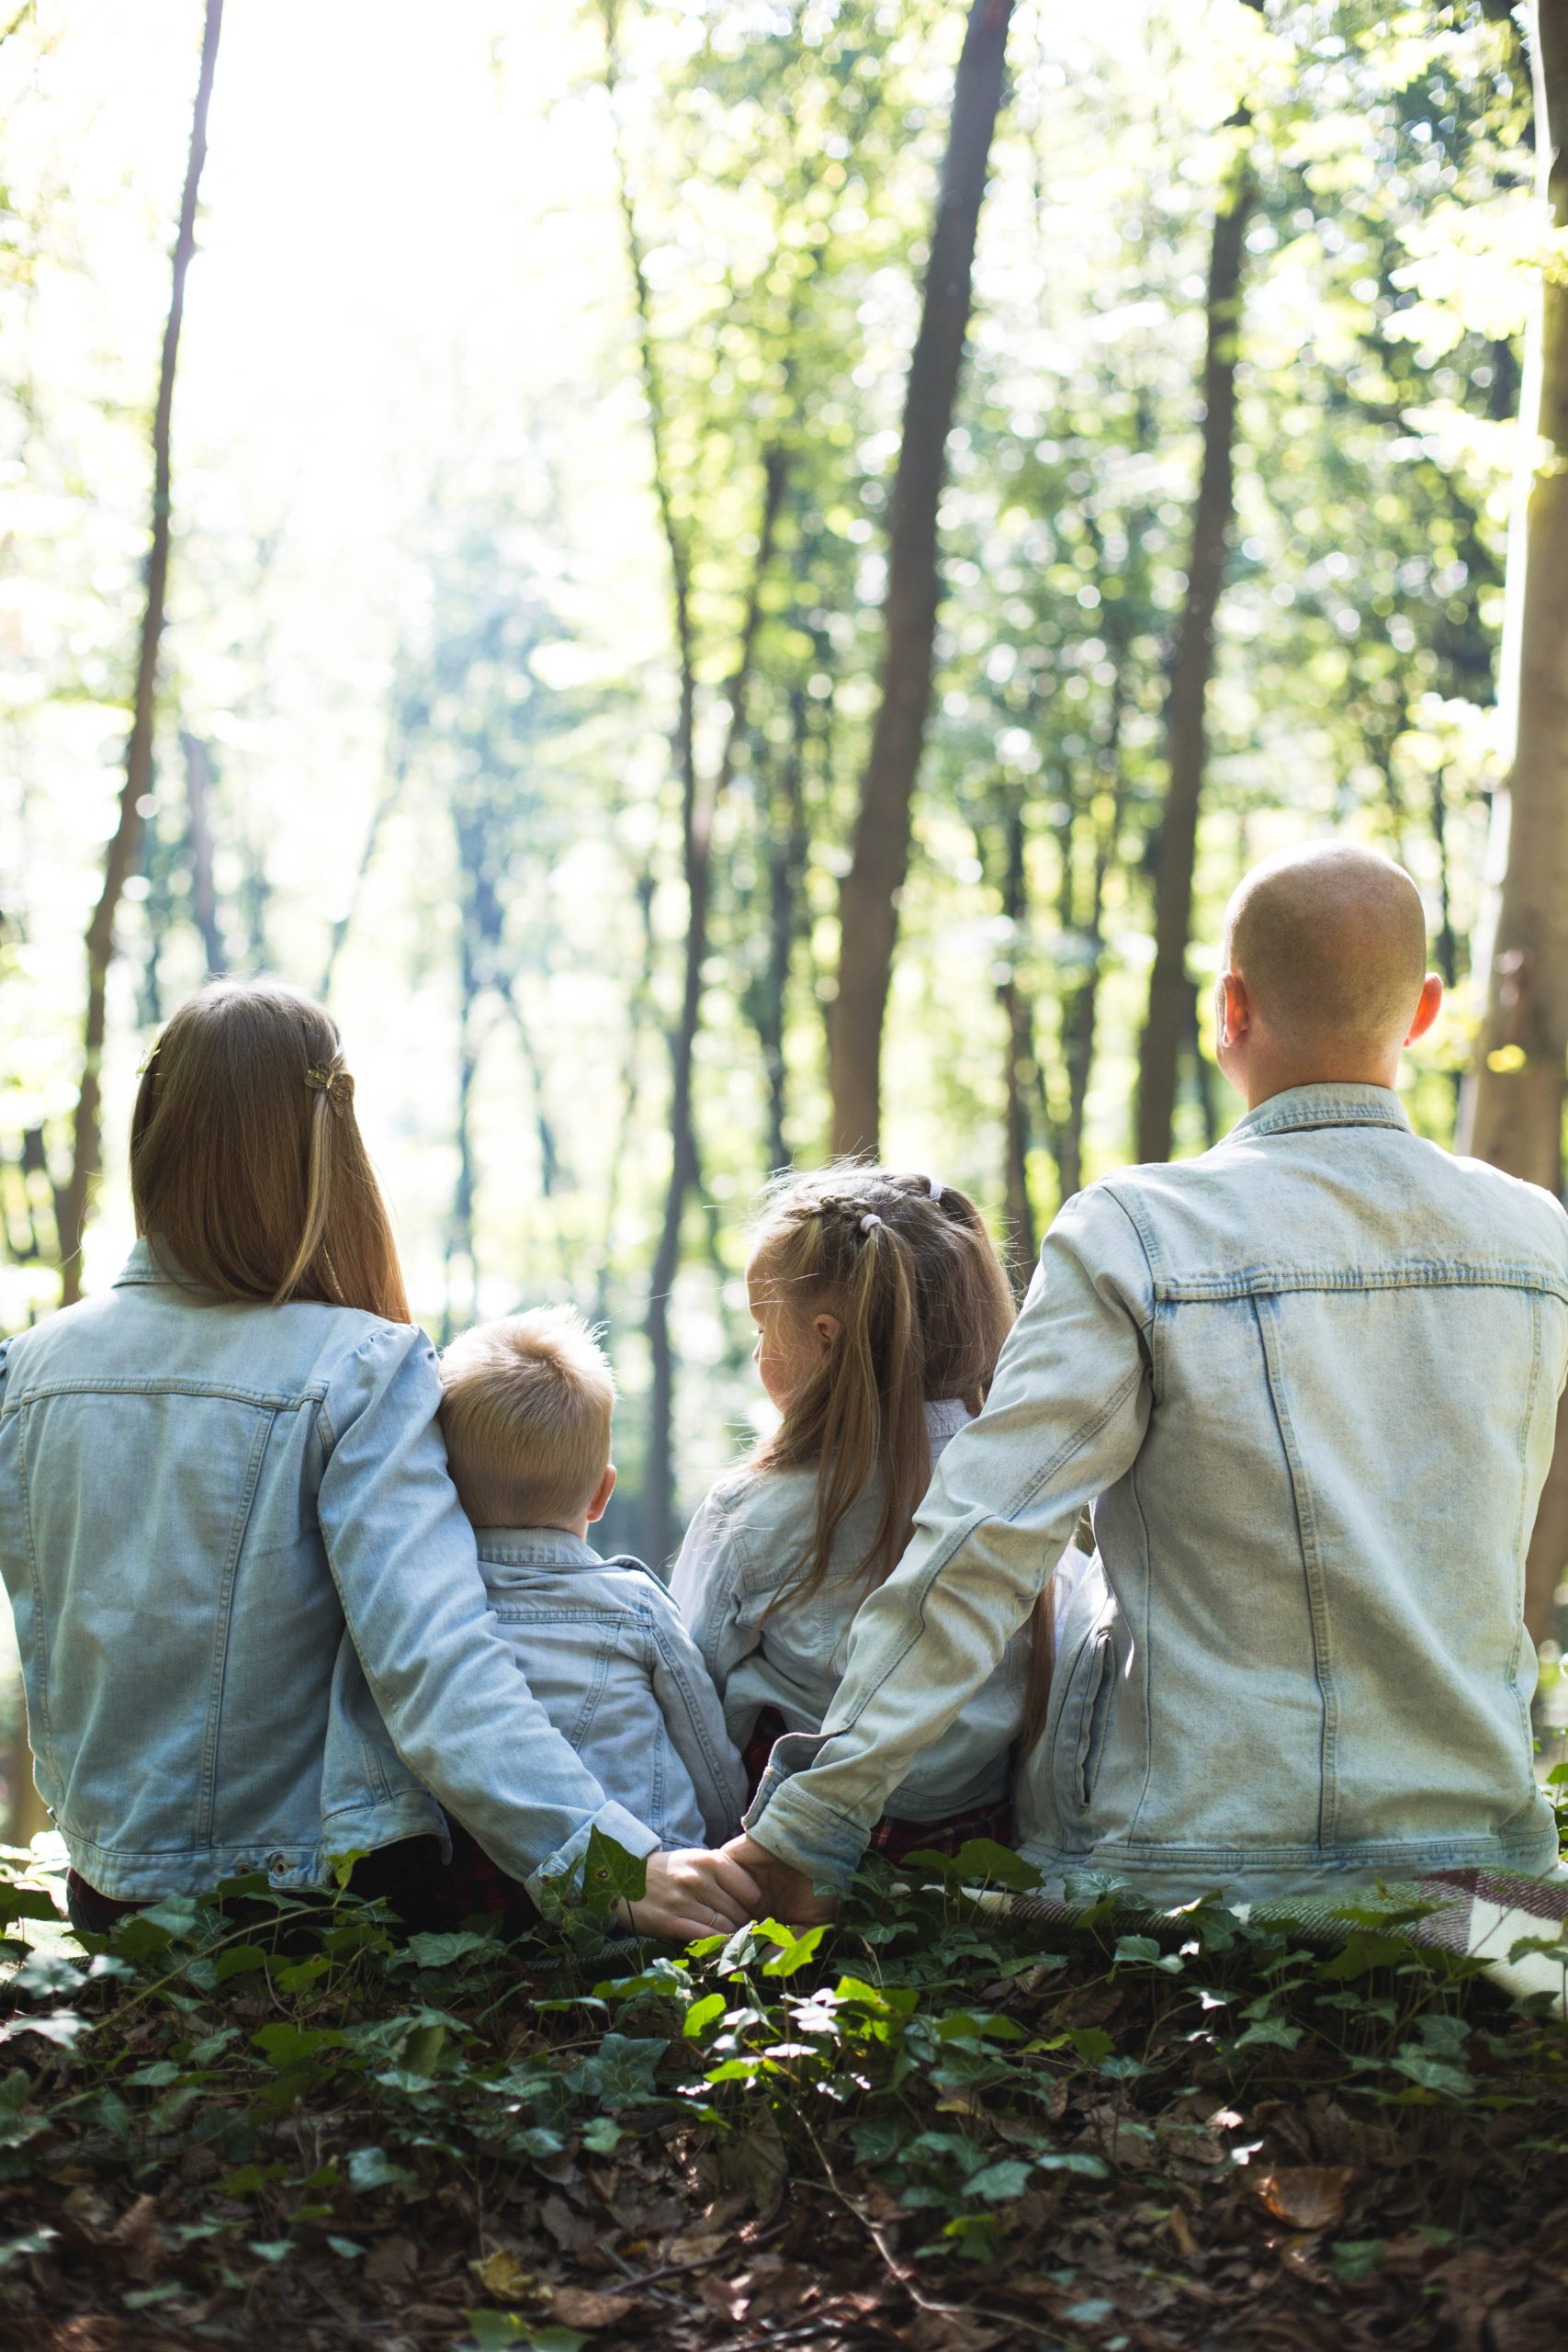 Redefining Family With Modern Thoughts? A Want or Need